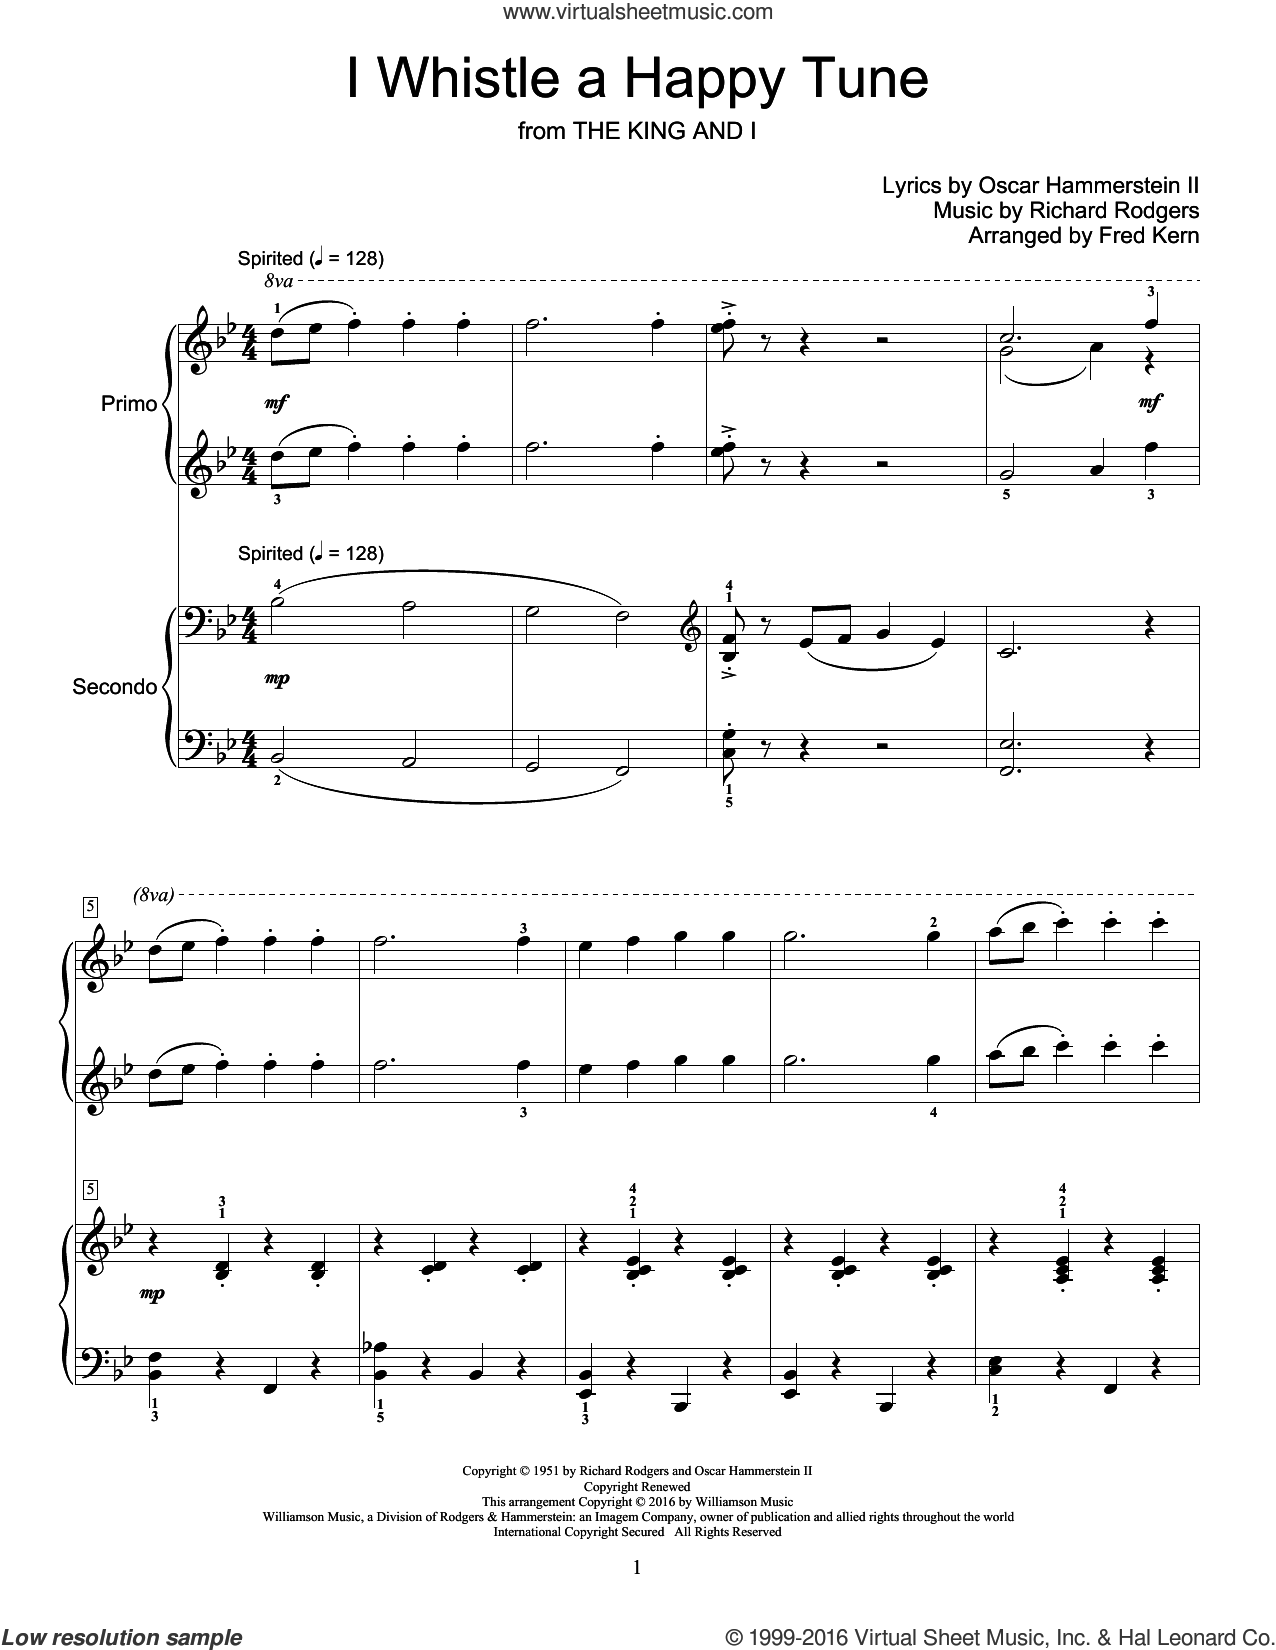 I Whistle A Happy Tune sheet music for piano four hands by Richard Rodgers, Fred Kern and Oscar II Hammerstein, intermediate skill level